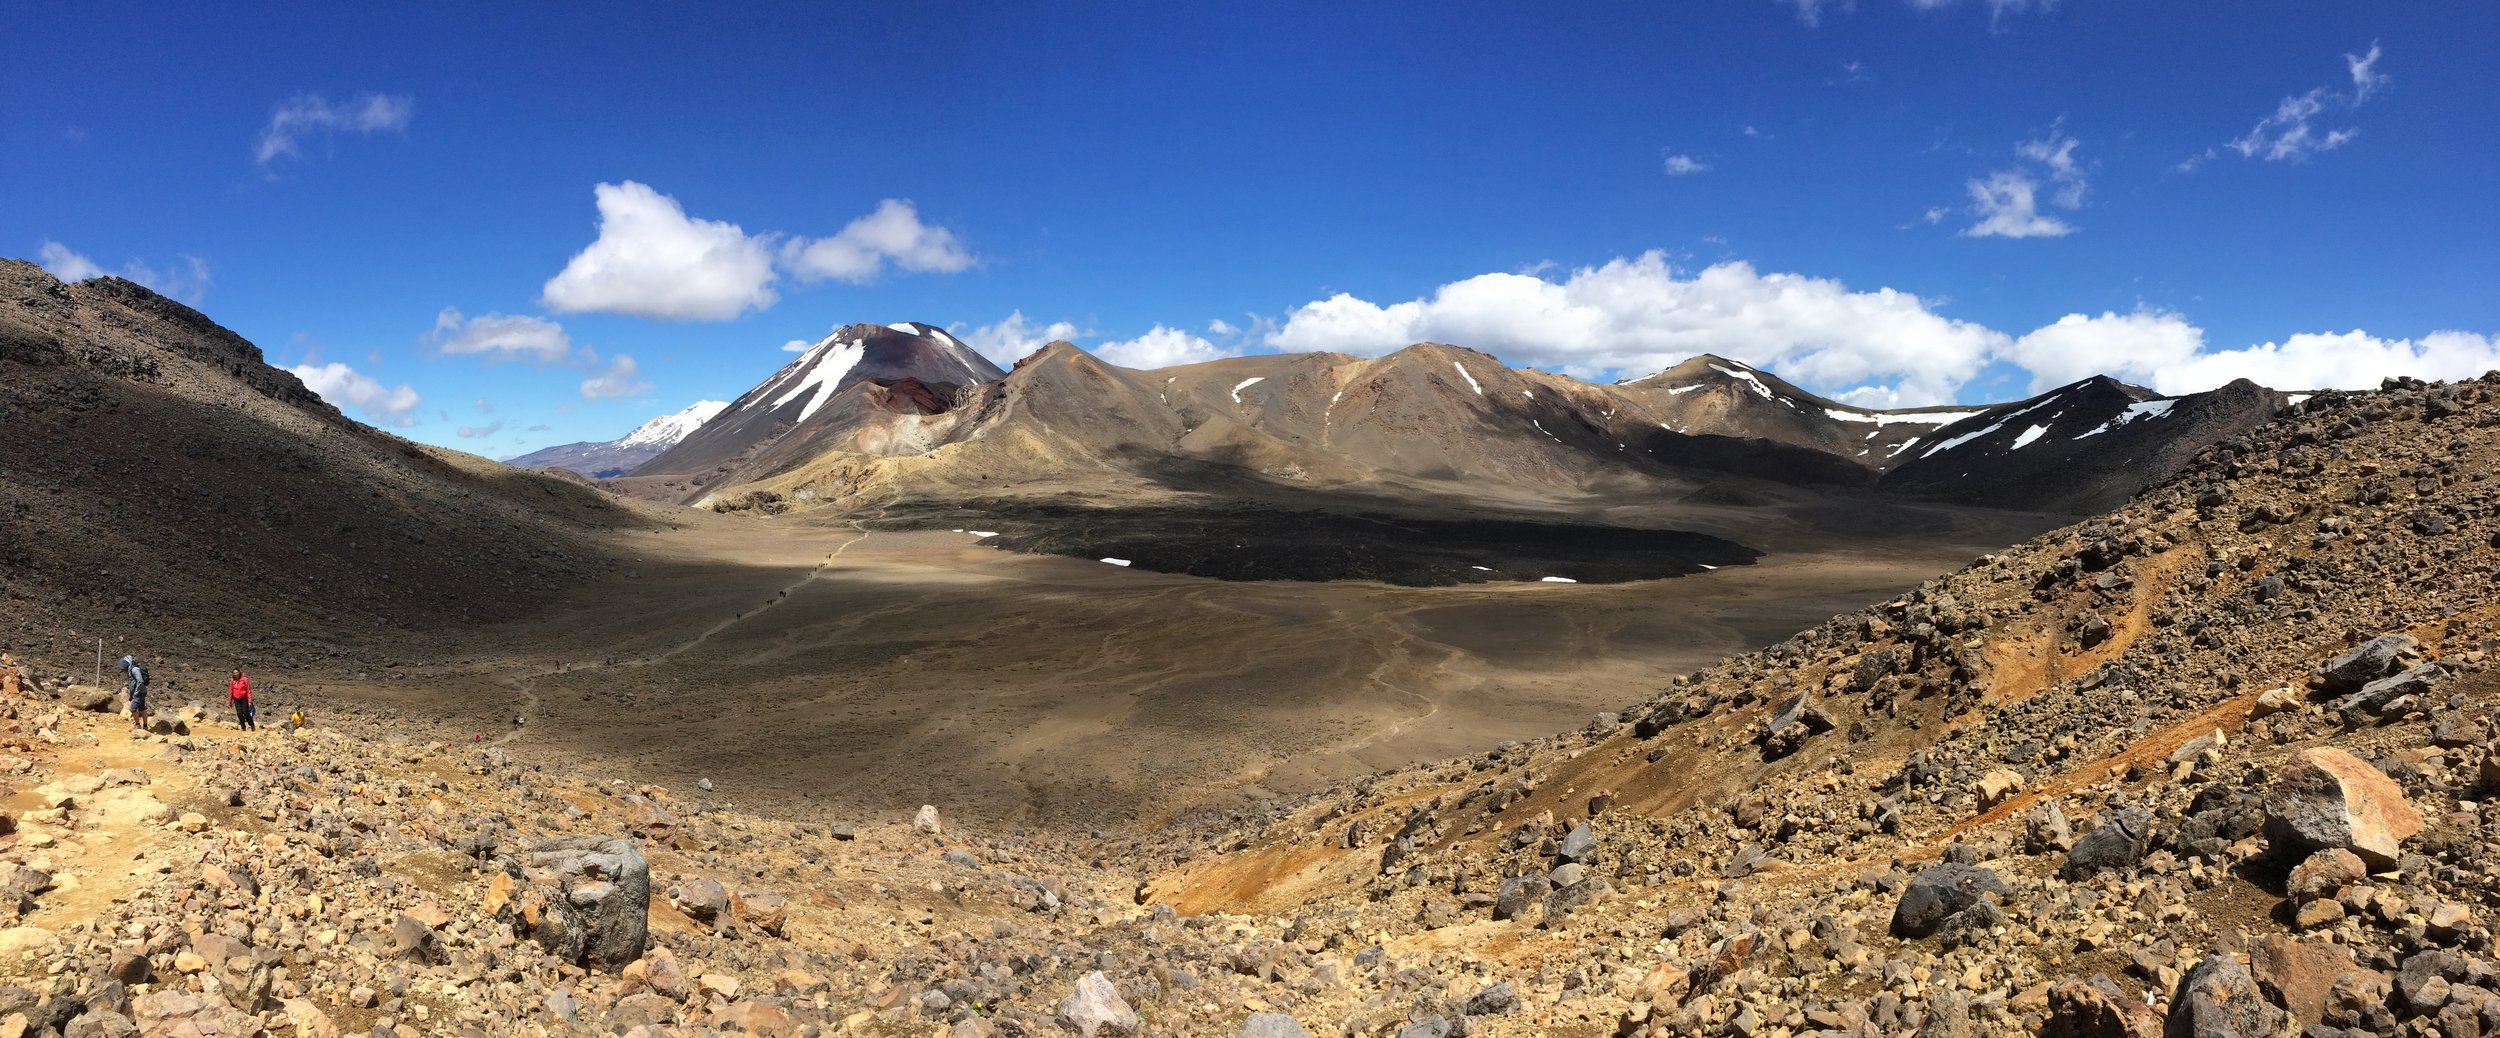 Another amazing view on the Tongariro - this is only a mere glimpse at the beauty of this hike.